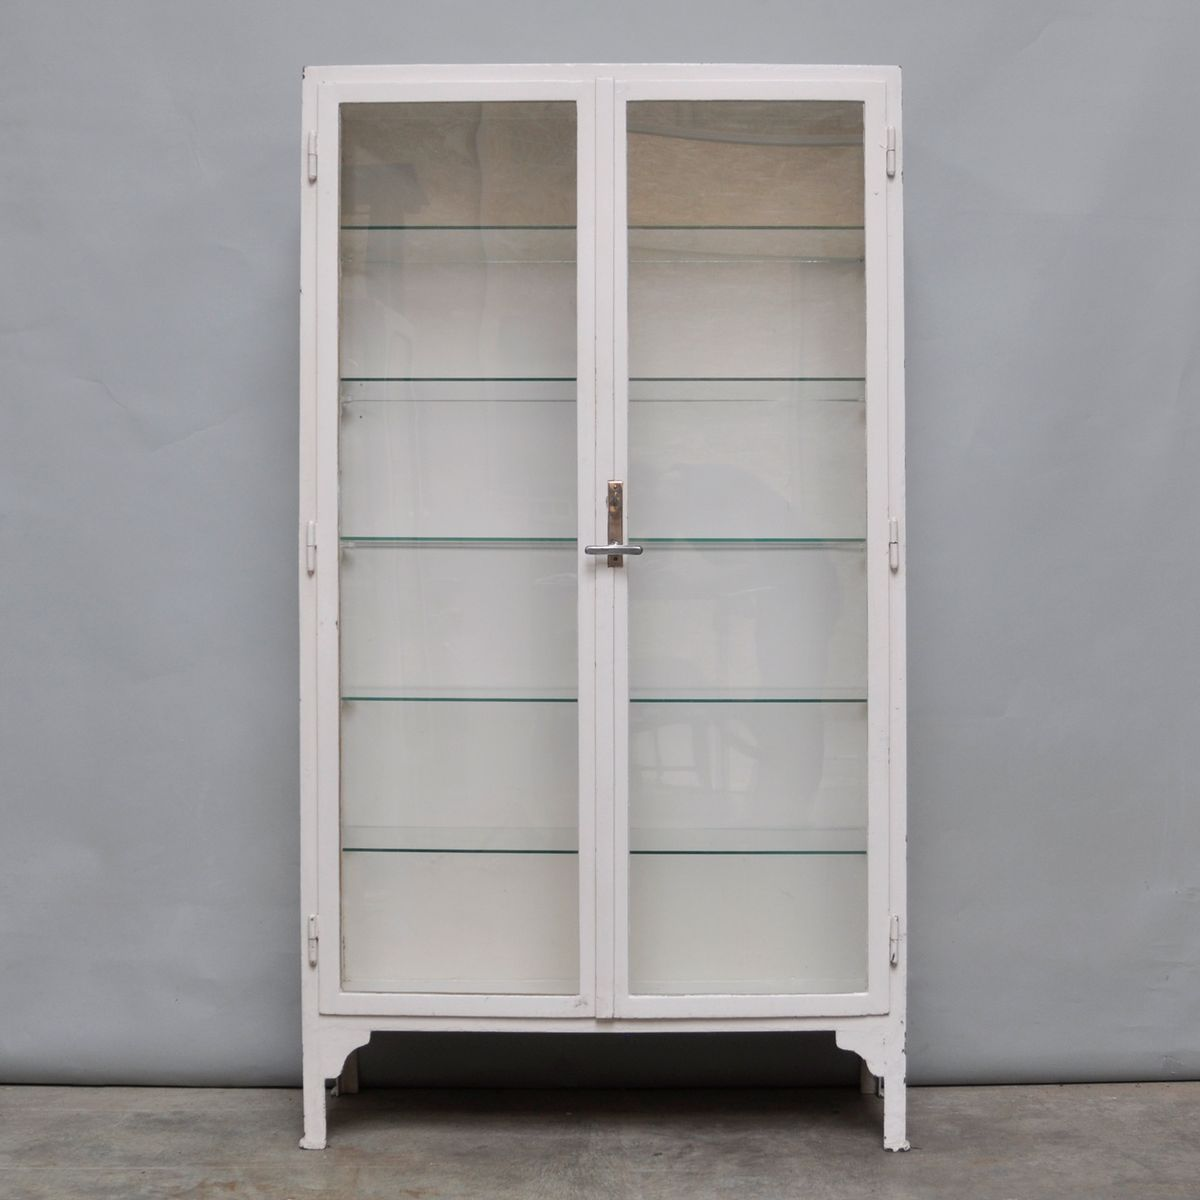 Vintage Steel And Glass Medicine Cabinet, 1940s Part 93